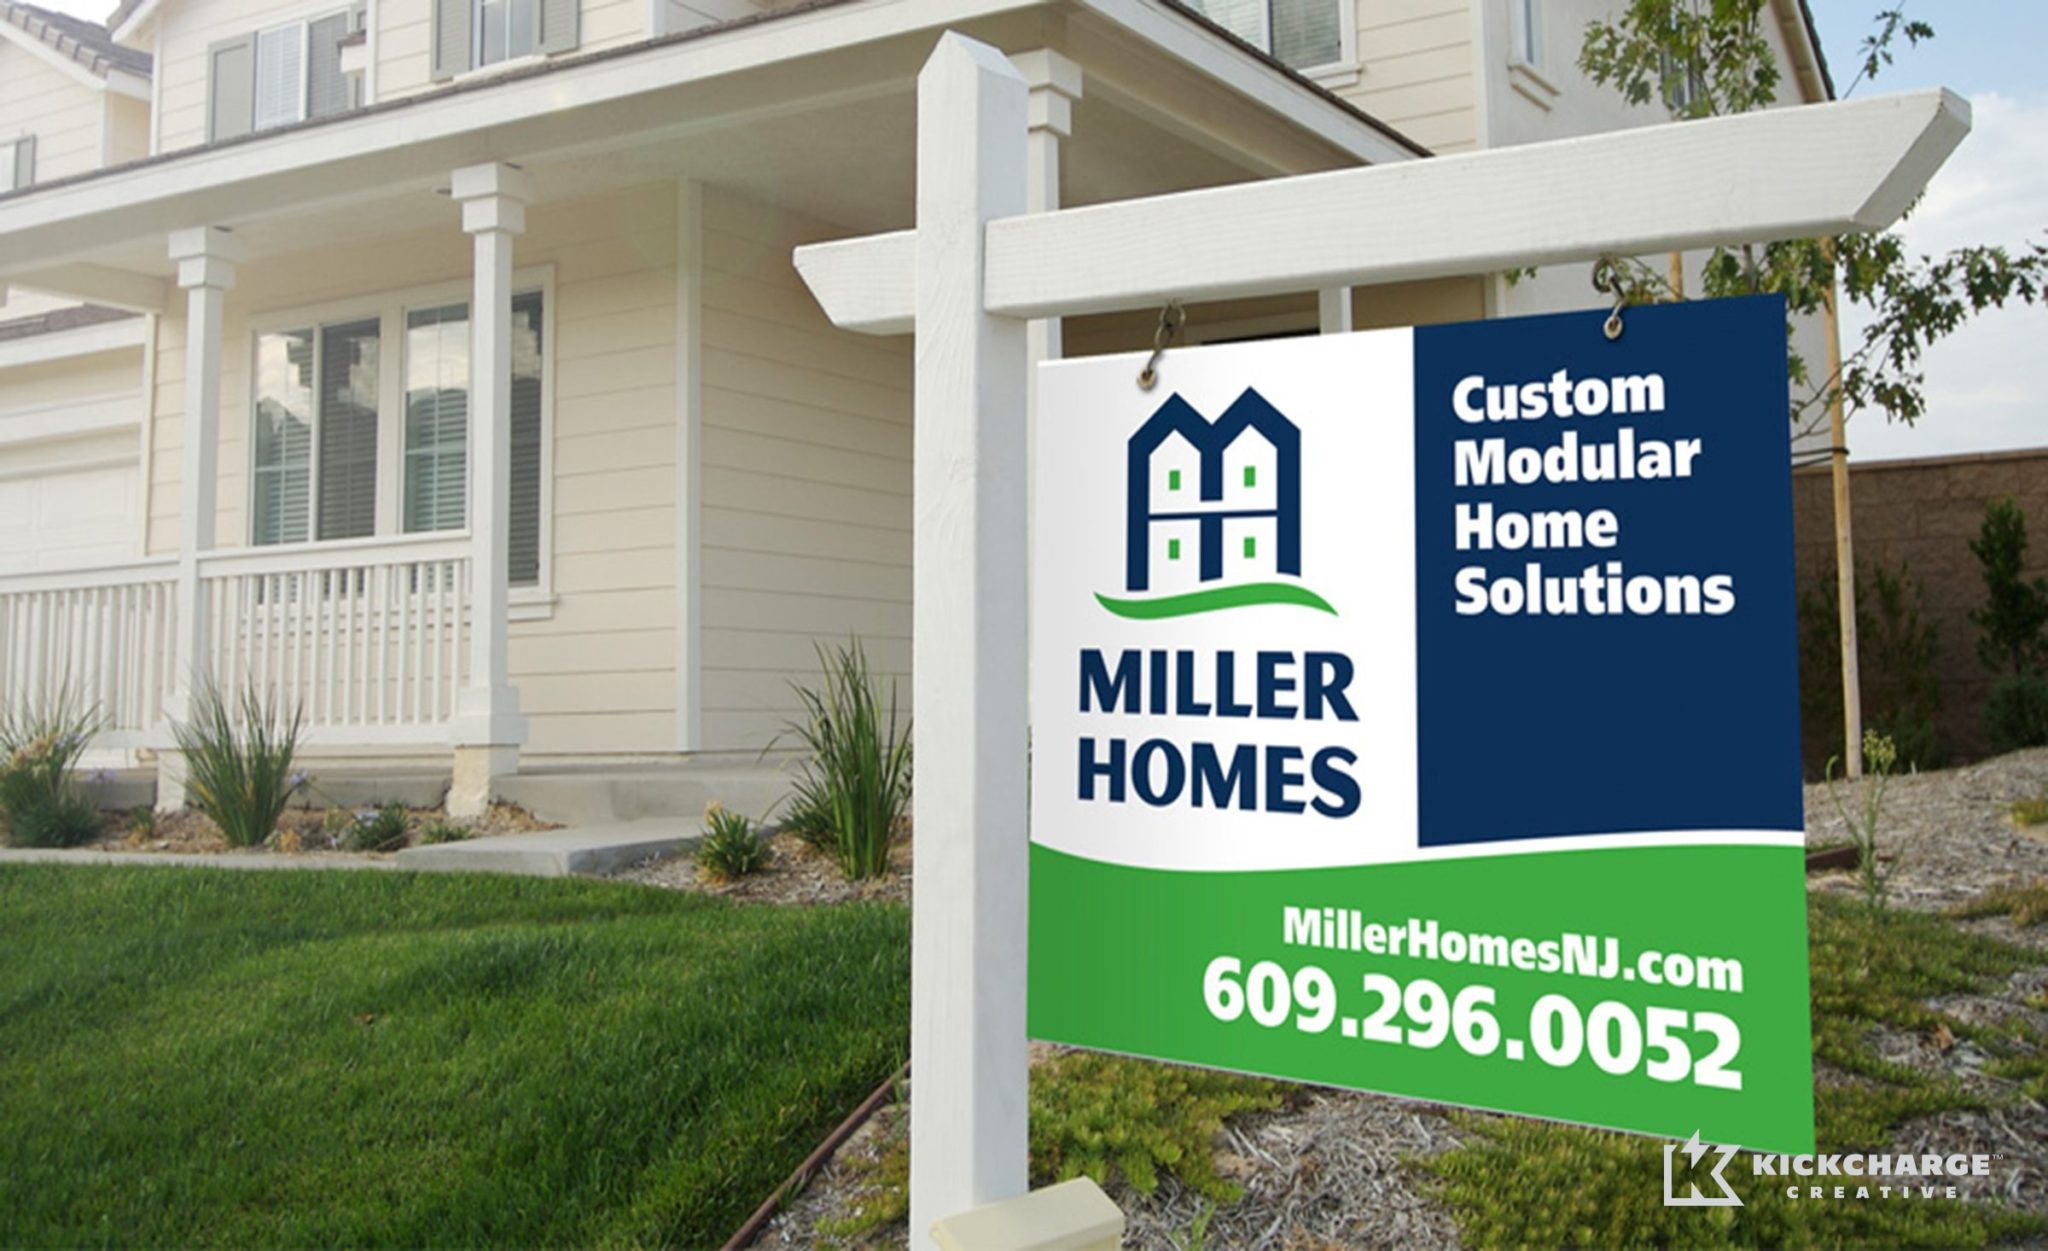 Site sign design and brand implementation for Miller Homes.